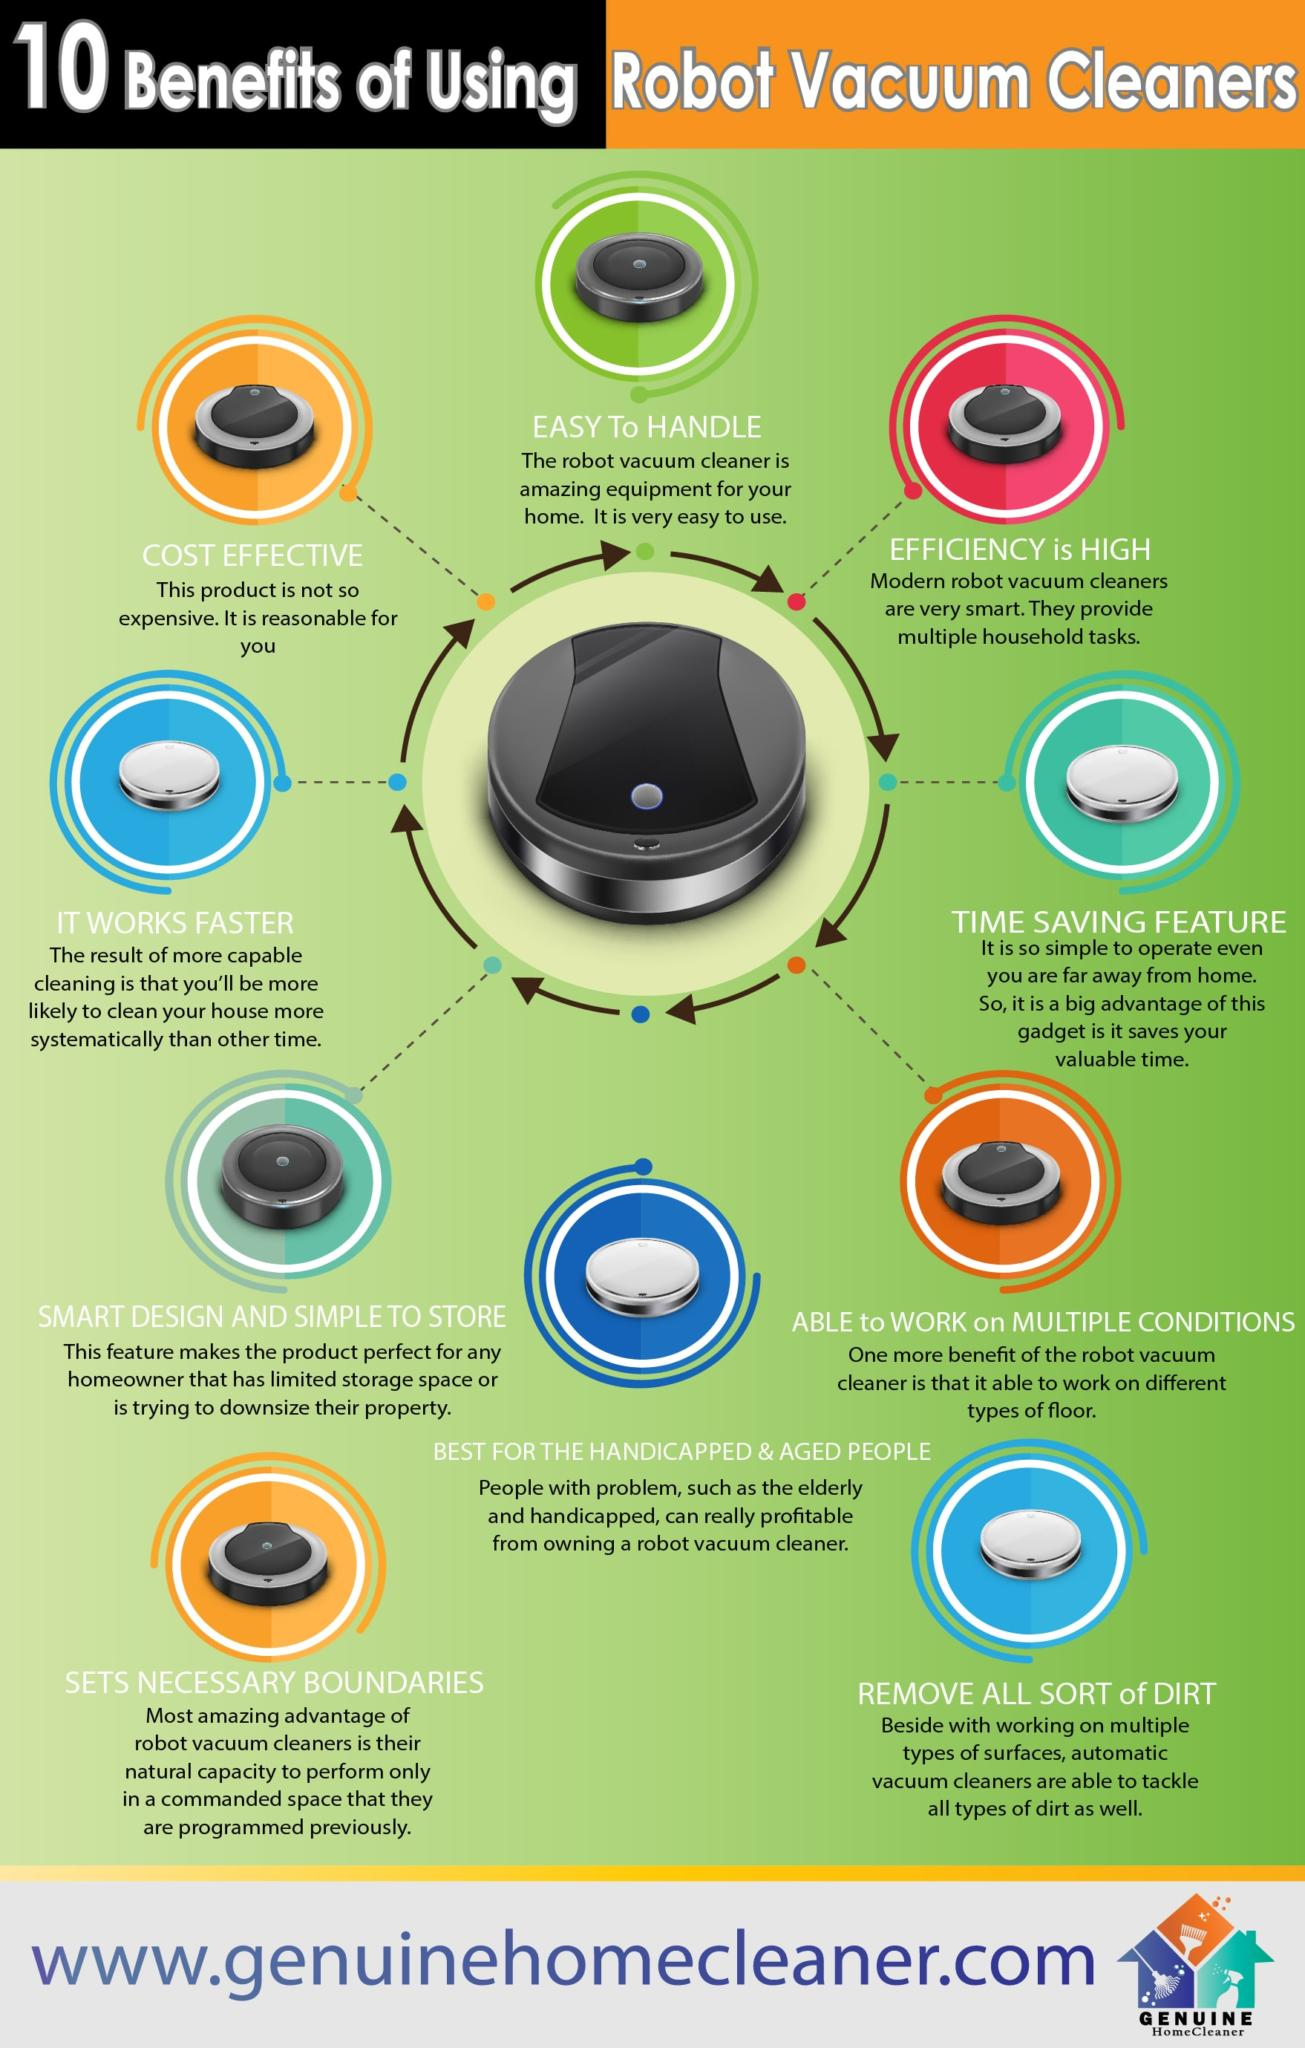 10 Benefits of Using Robot Vacuum Cleaners: Cleaning Makes Simple